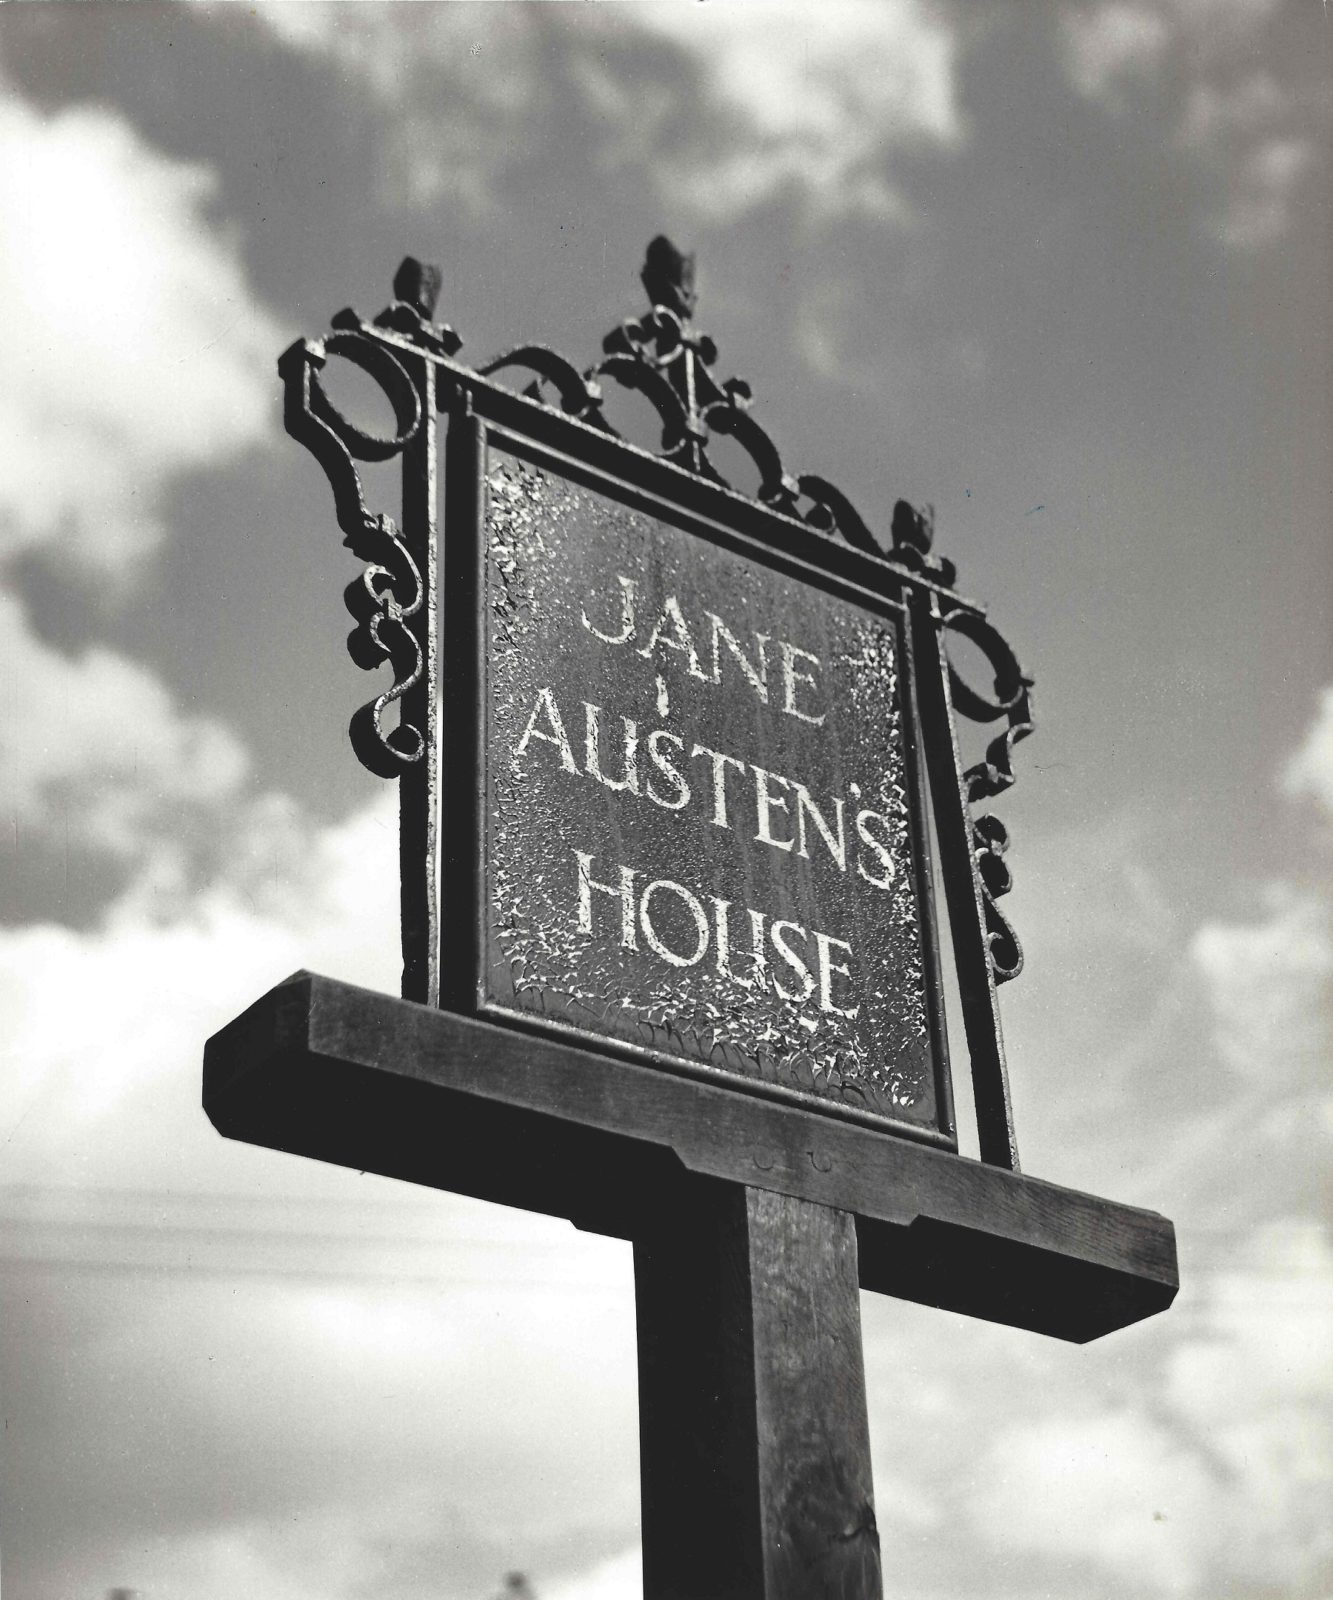 An old sign reading Jane Austen's House